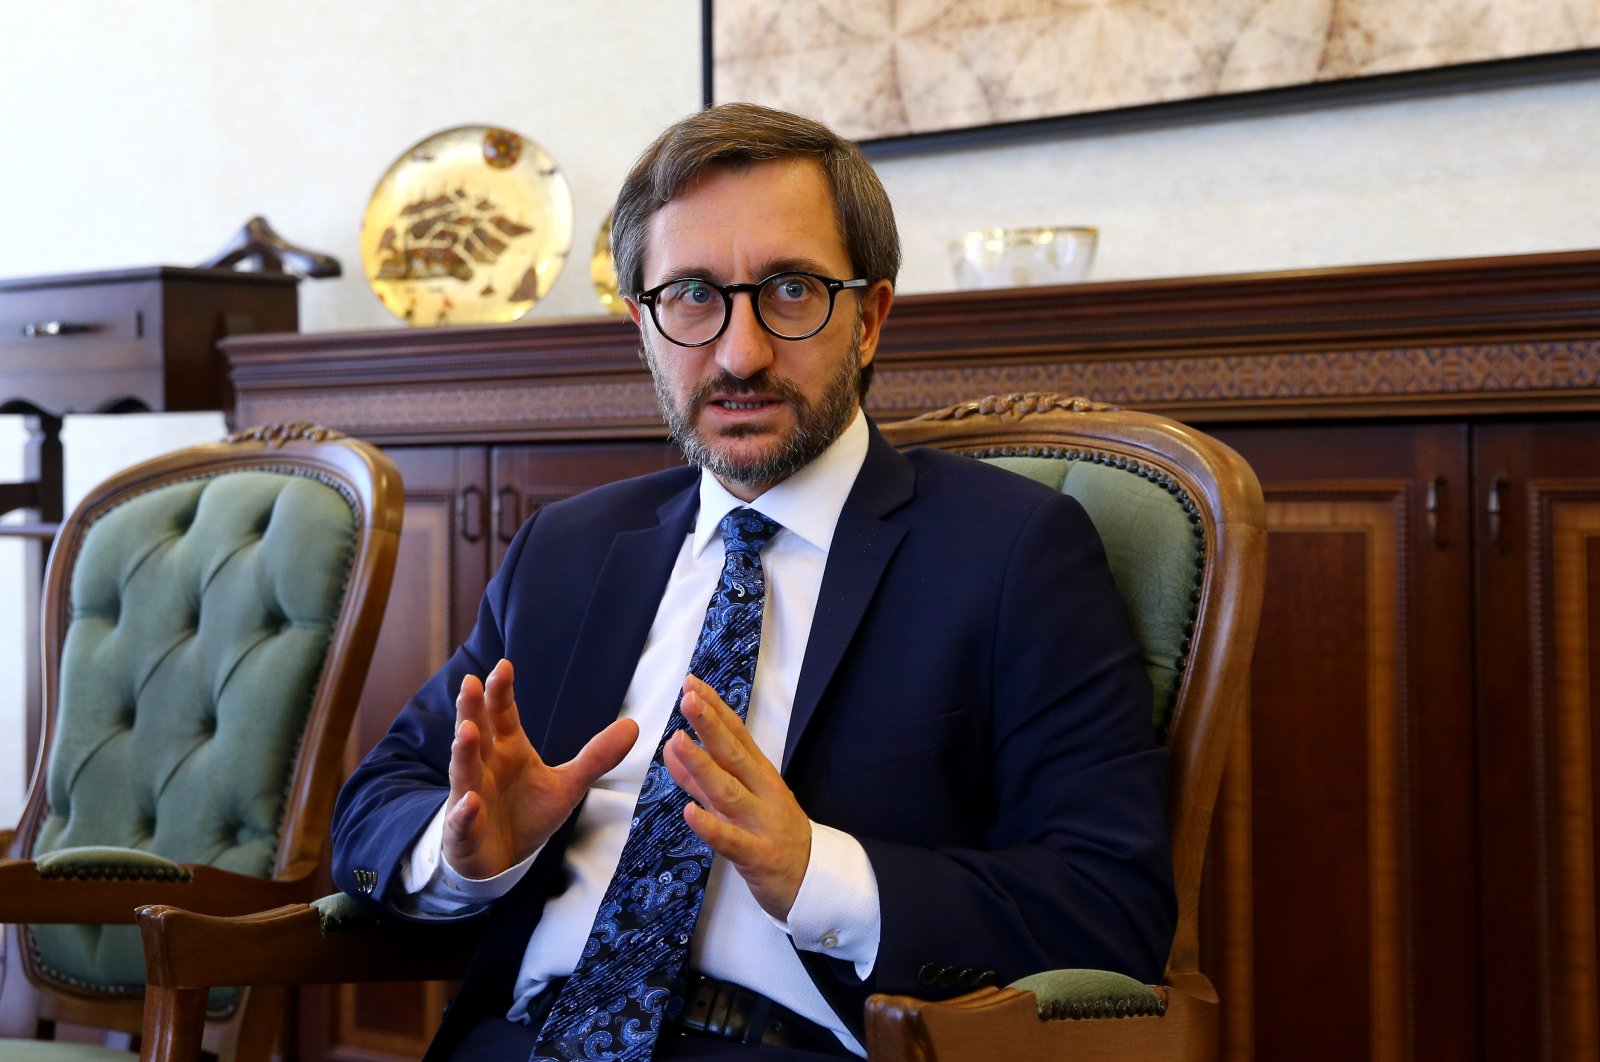 Presidential Communications Director Fahrettin Altun gestures during an interview with Anadolu Agency (AA) on Oct. 7, 2019. (AA File Photo)